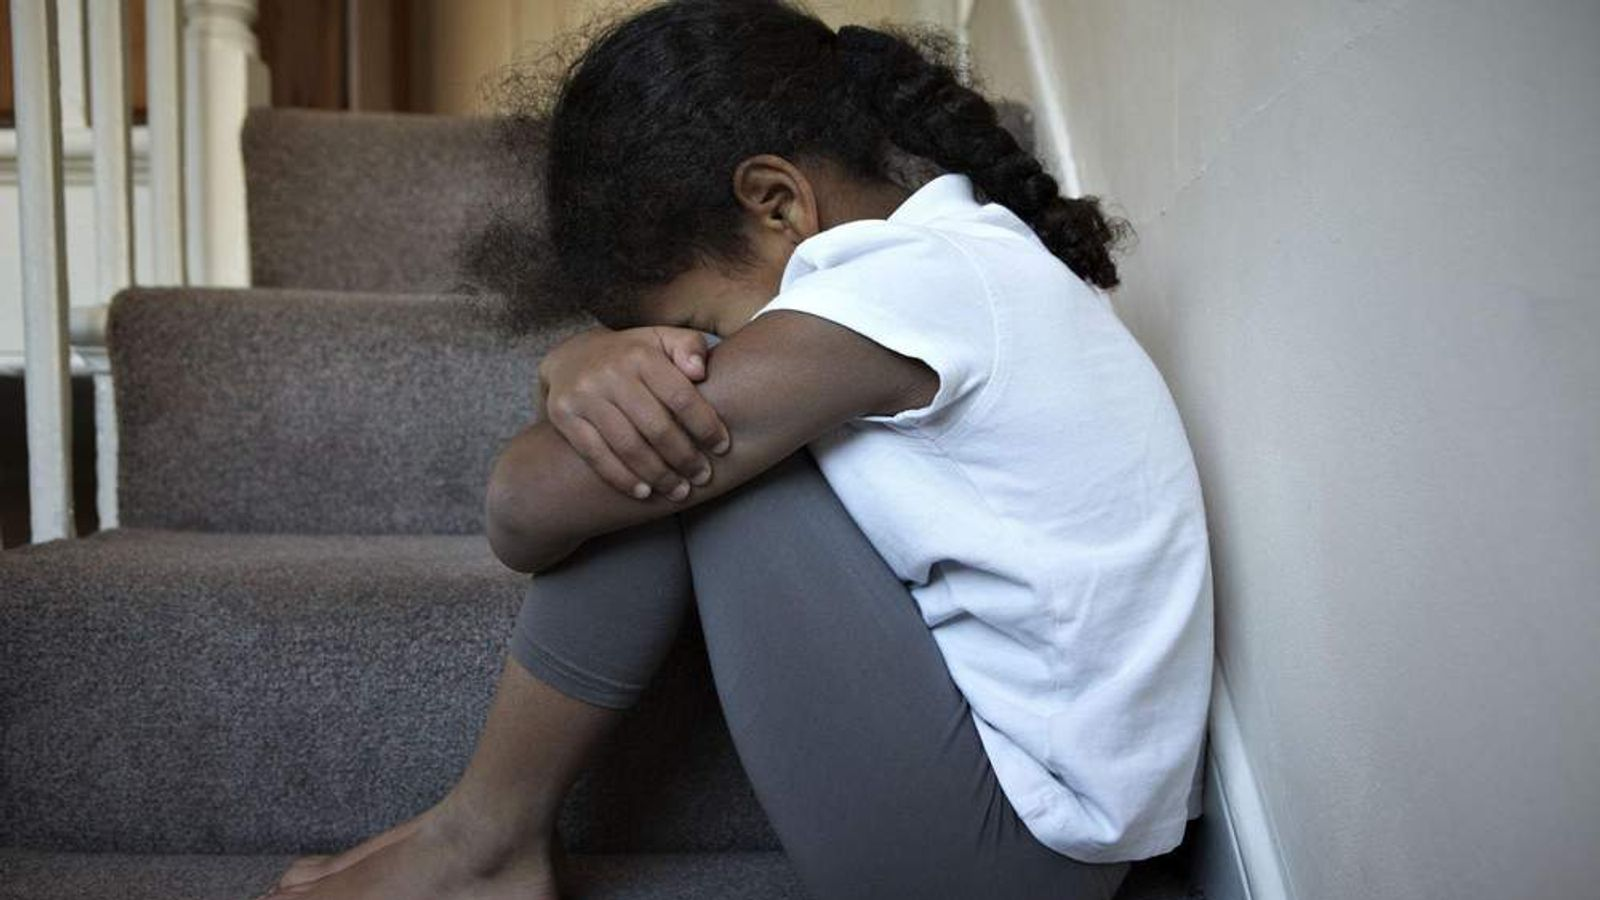 The NSPCC launch helpline for people affected by female genital mutilation